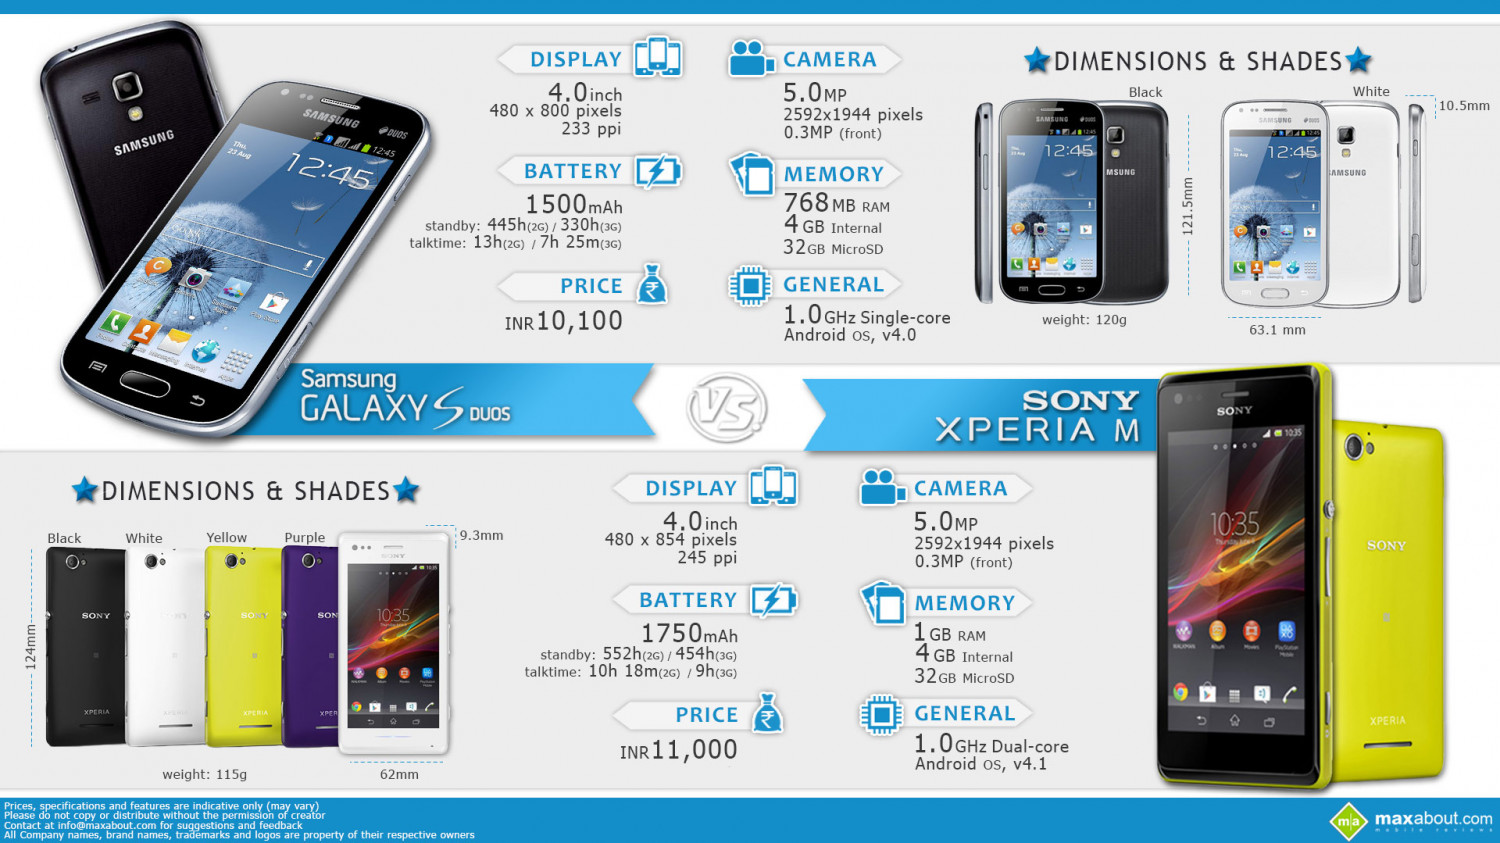 Sony Xperia M vs. Samsung Galaxy S Duos Infographic